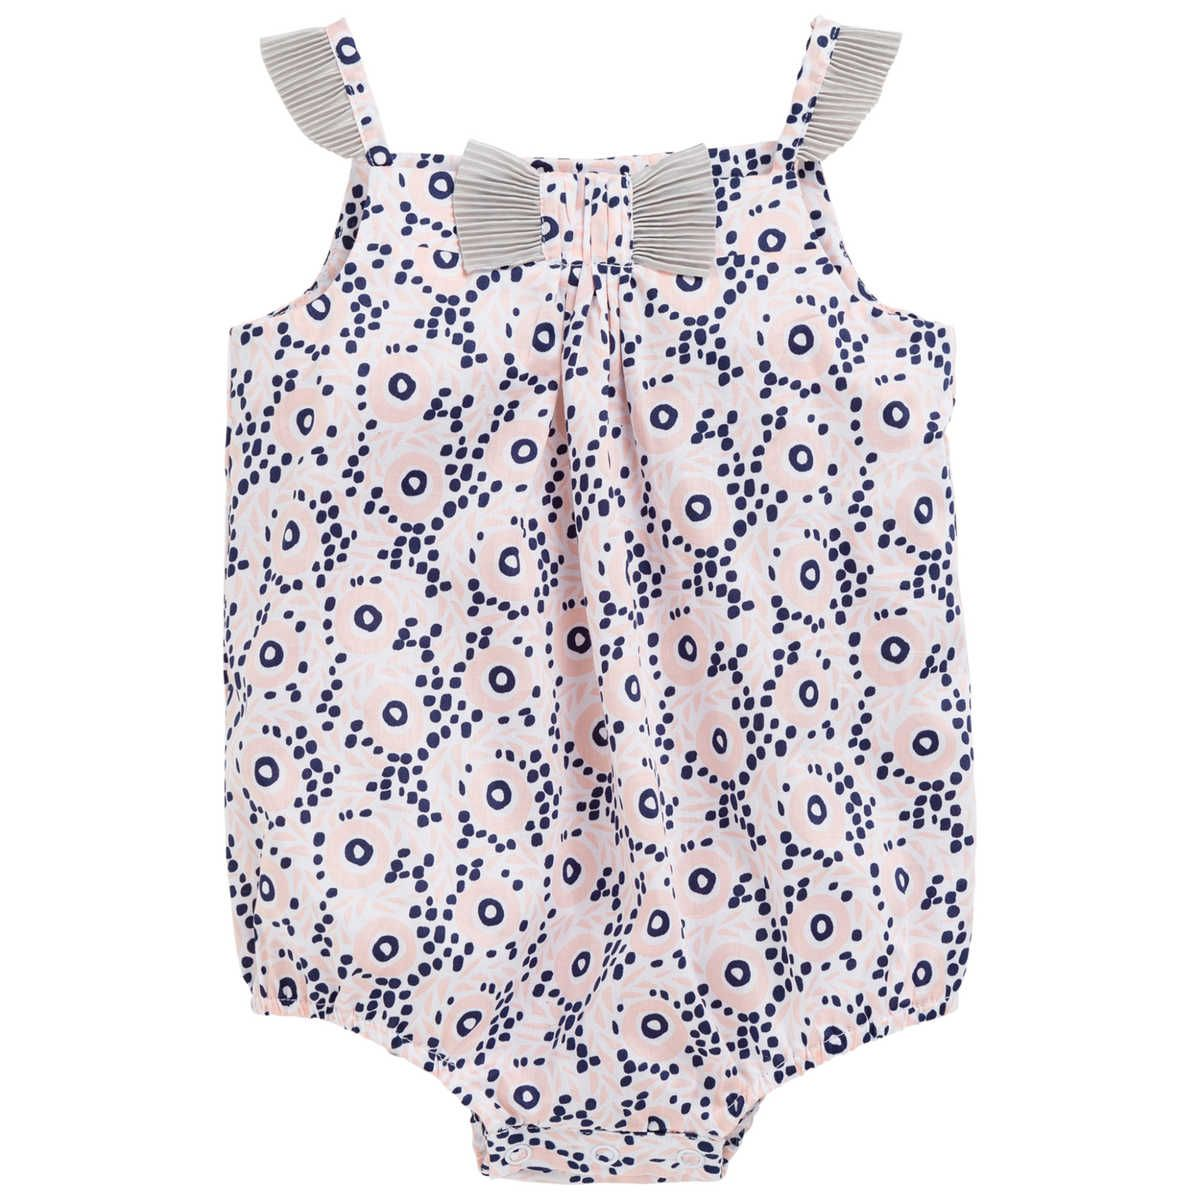 a2efdb4647501fe1e5106999de4457f7 peter morrissey woven romper big w little miss style,Big W Childrens Clothes